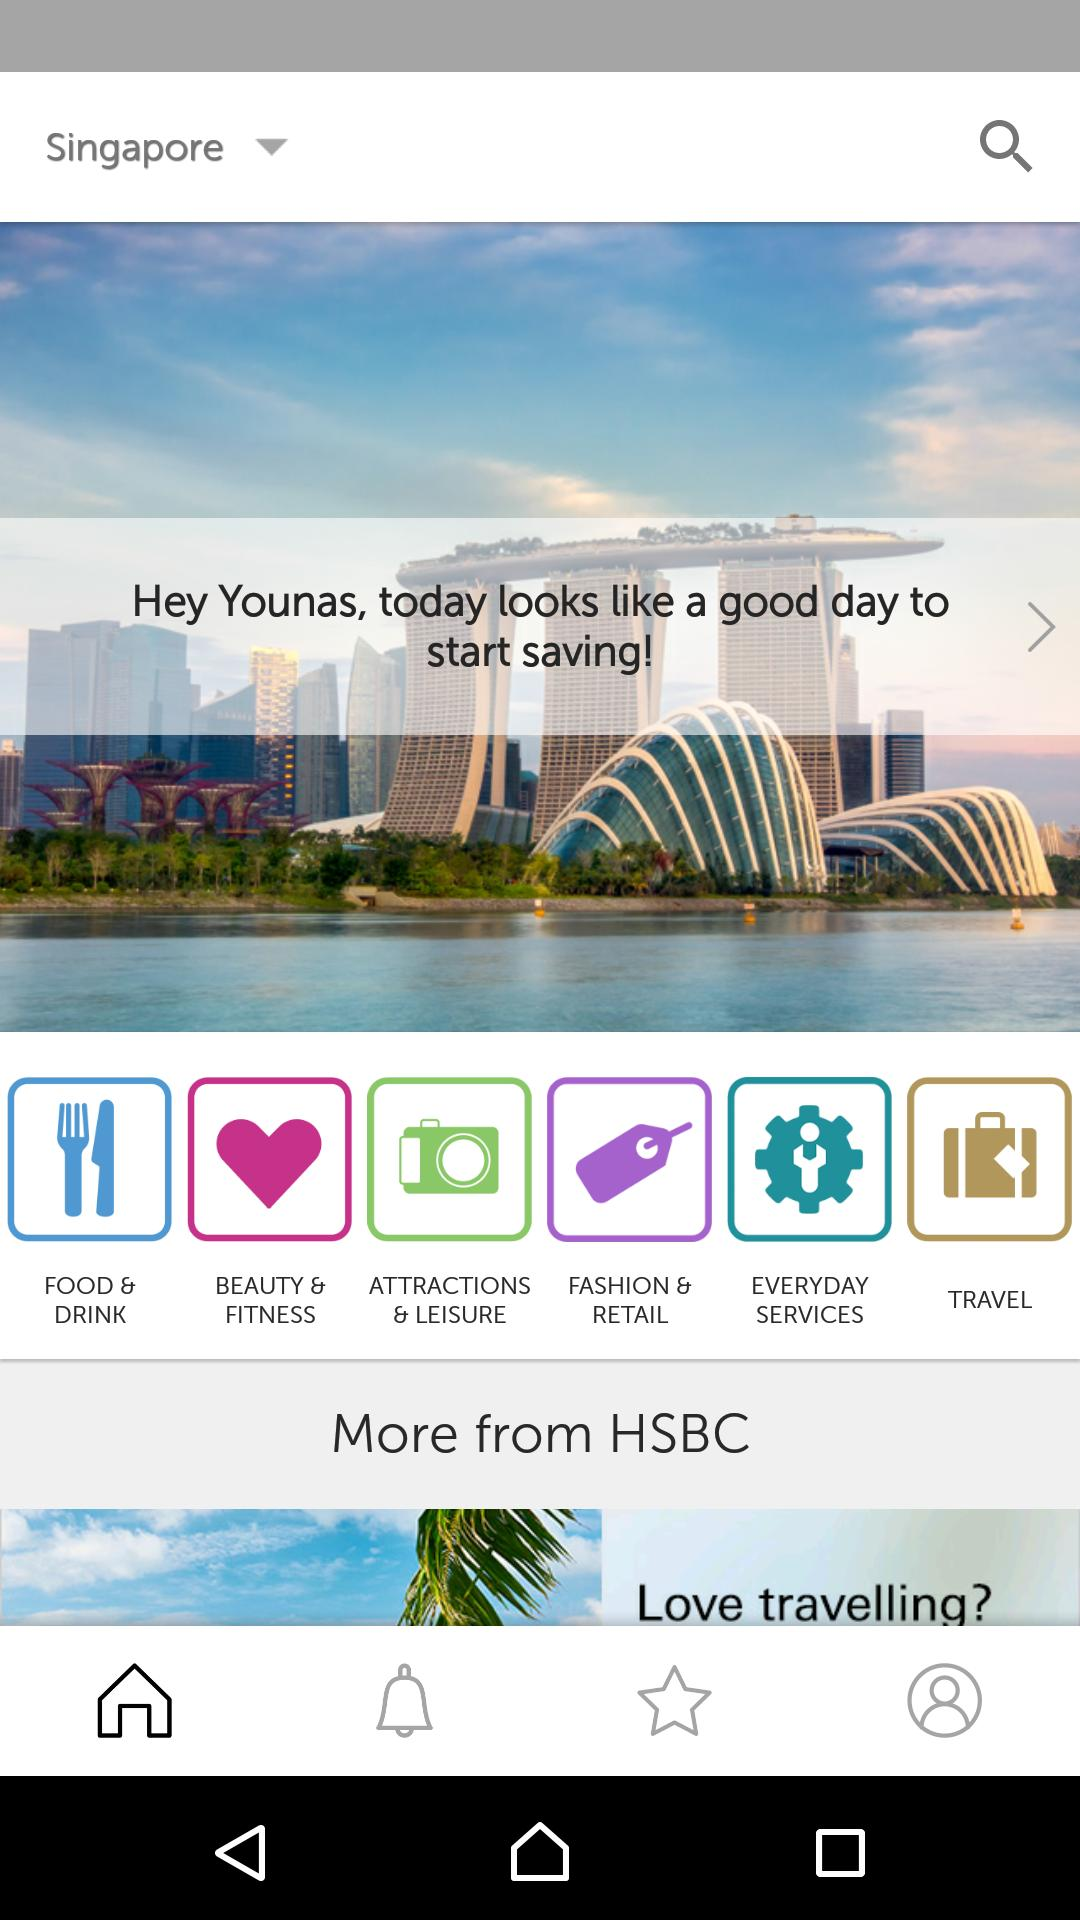 Hsbc Travel Services